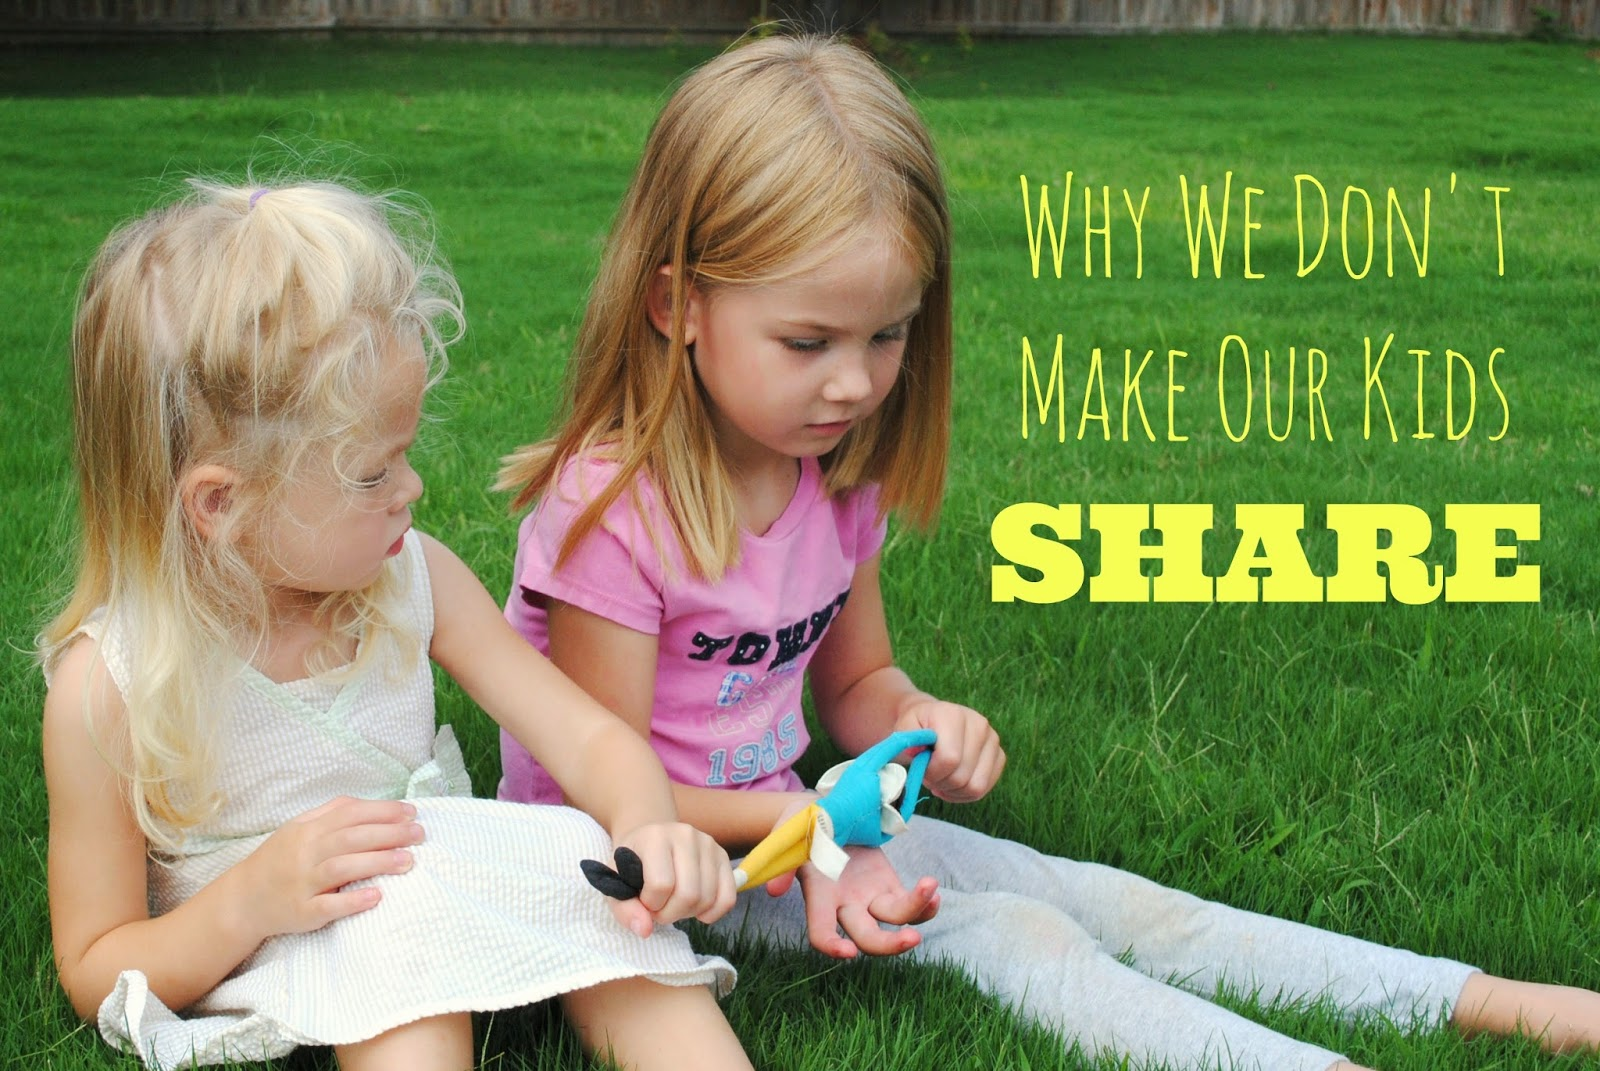 Why We Don't Make Our Kids Share